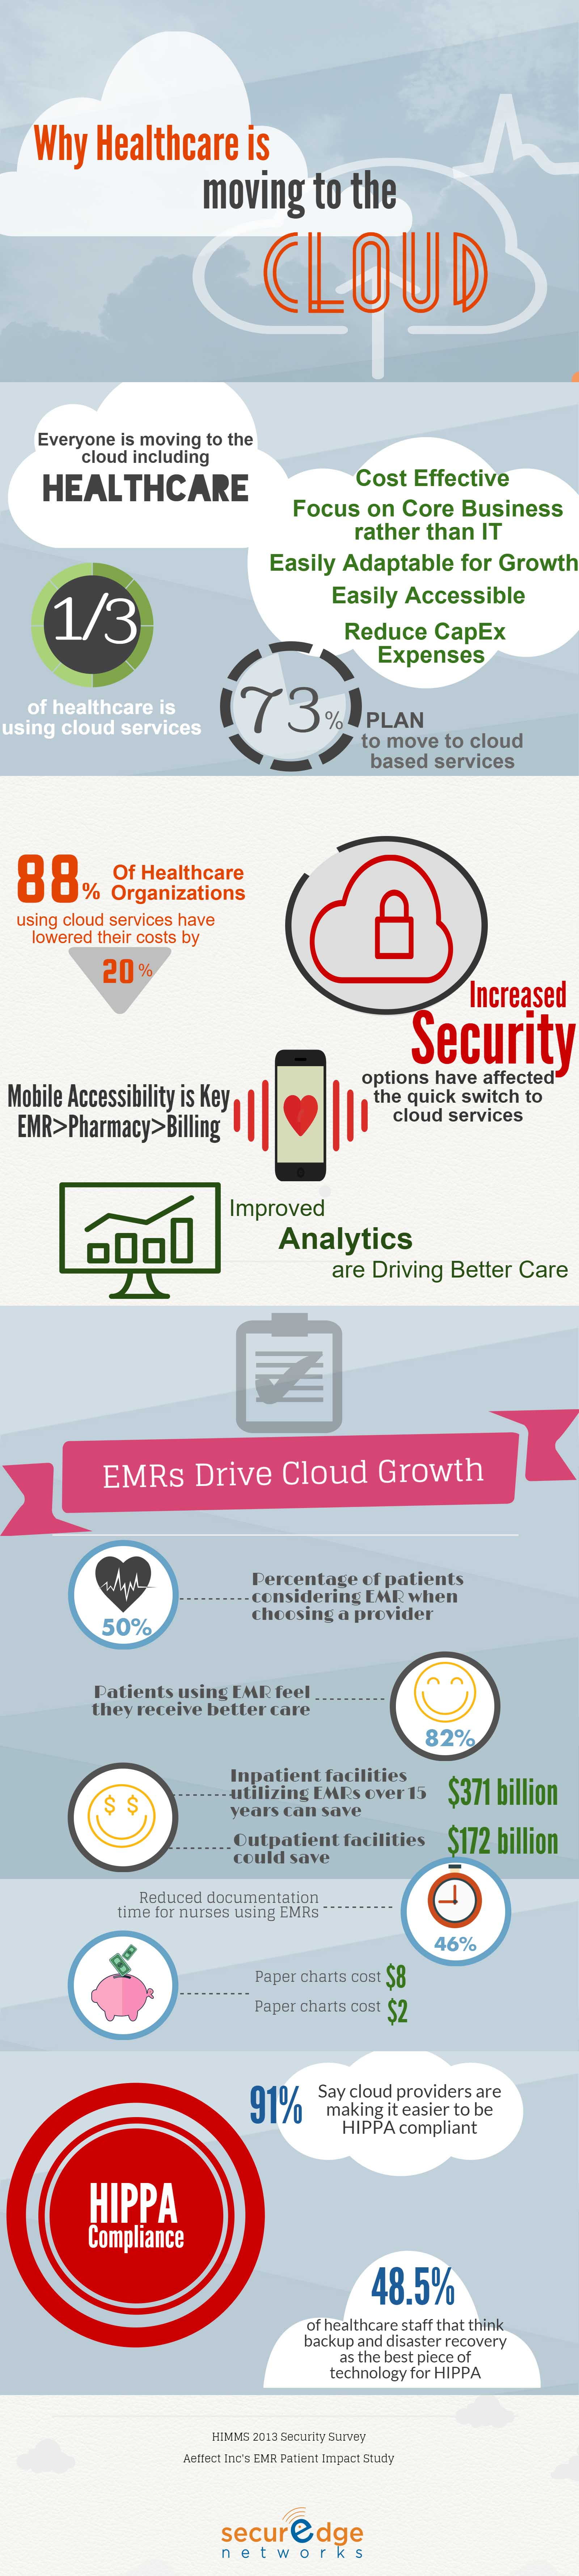 why_healthcare_and_hospital_wireless_networks_are_moving_to_the_cloud.jpg